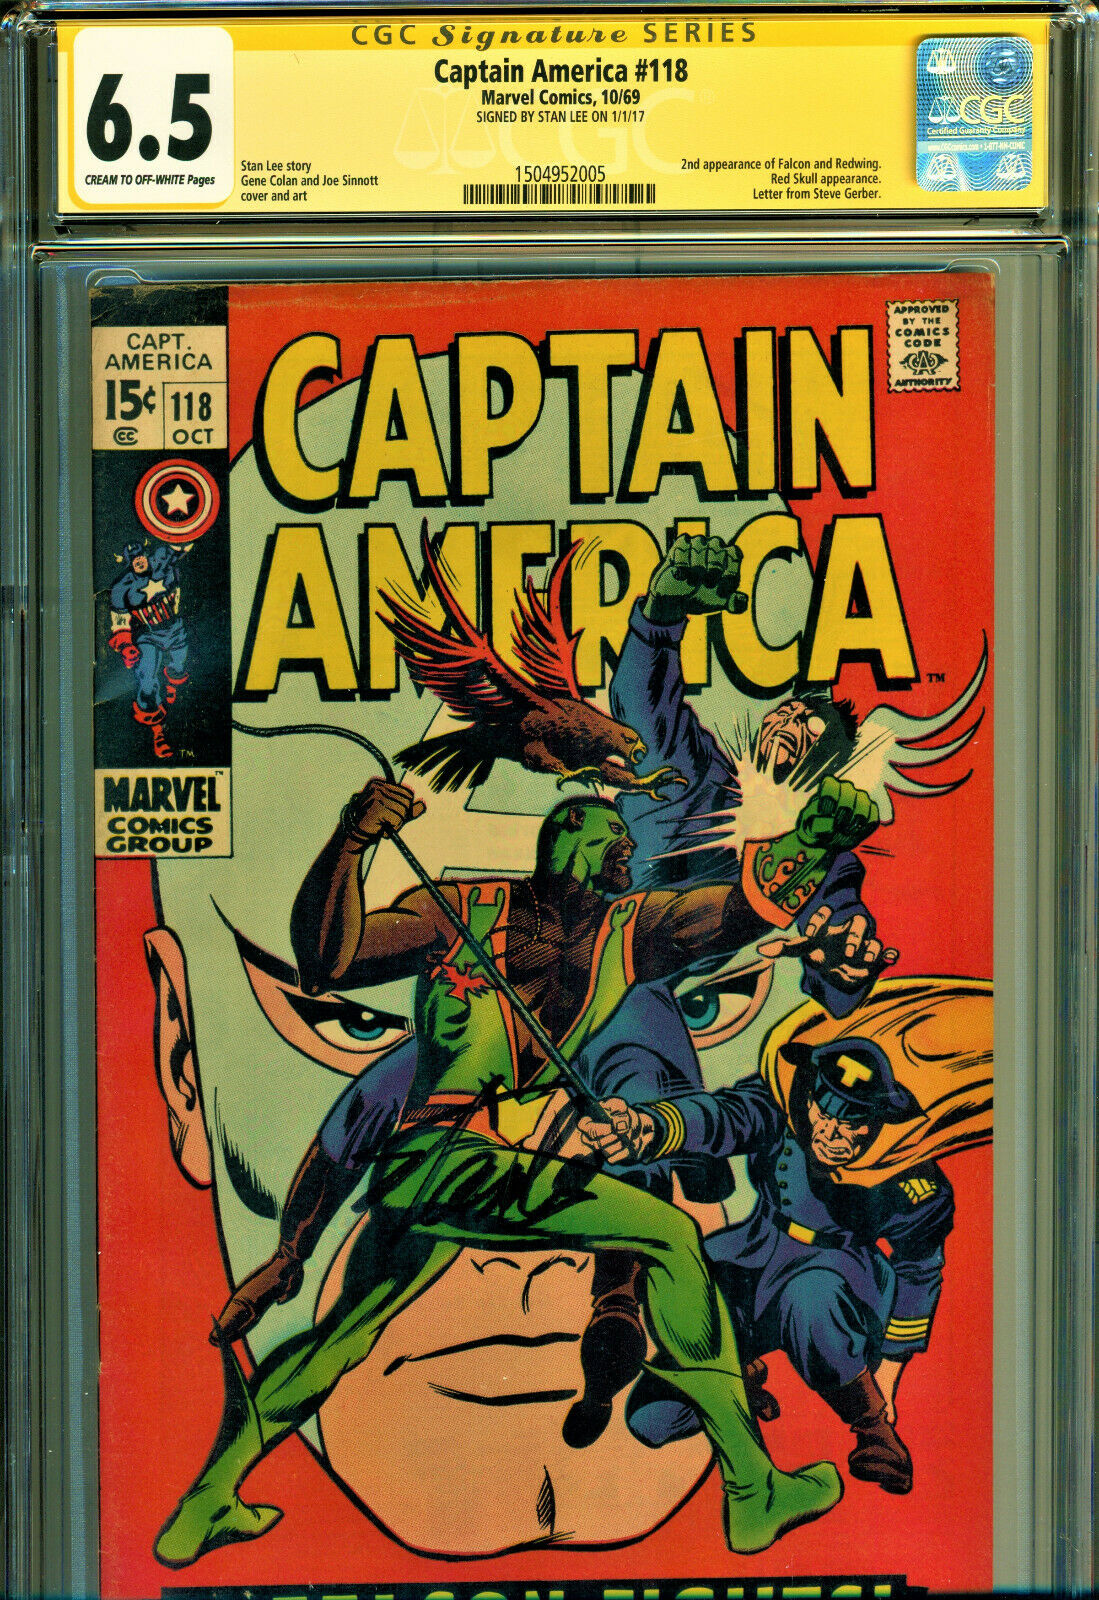 CAPTAIN AMERICA #118 CGC 6.5 SS SIGNED BY STAN LEE 2ND APP OF FALCON-RED SKULL